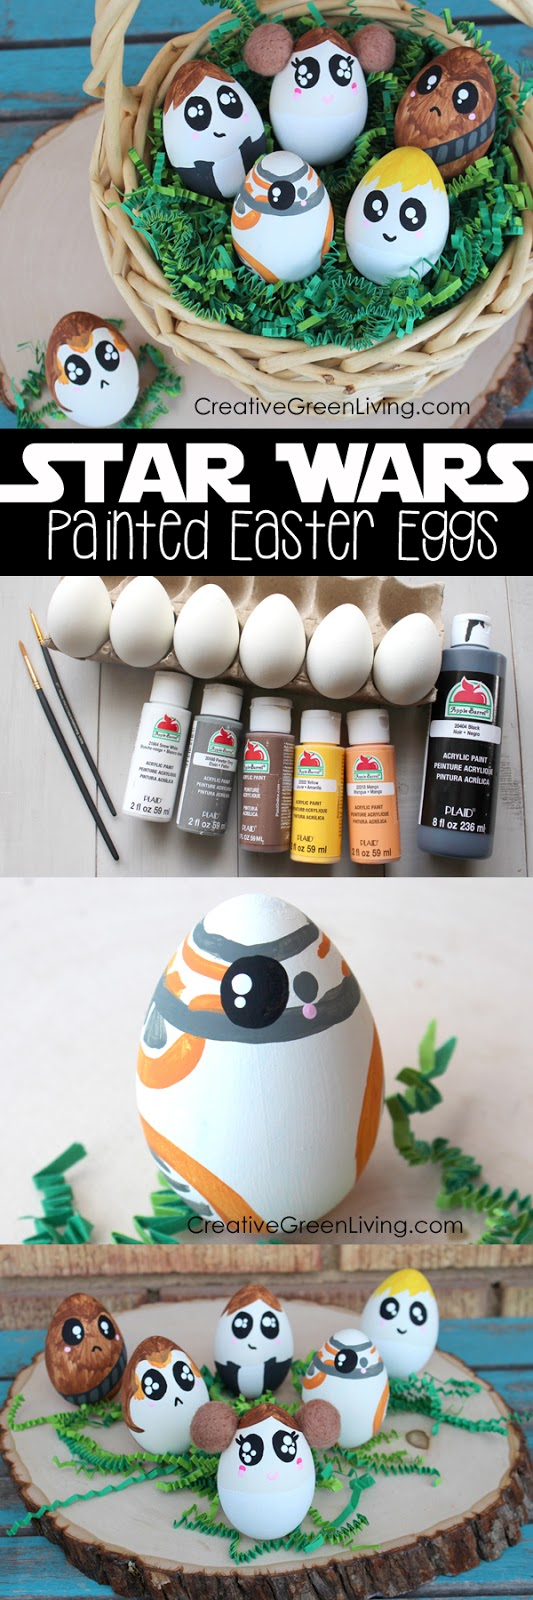 Best Star Wars craft ideas - how to make star wars easter eggs